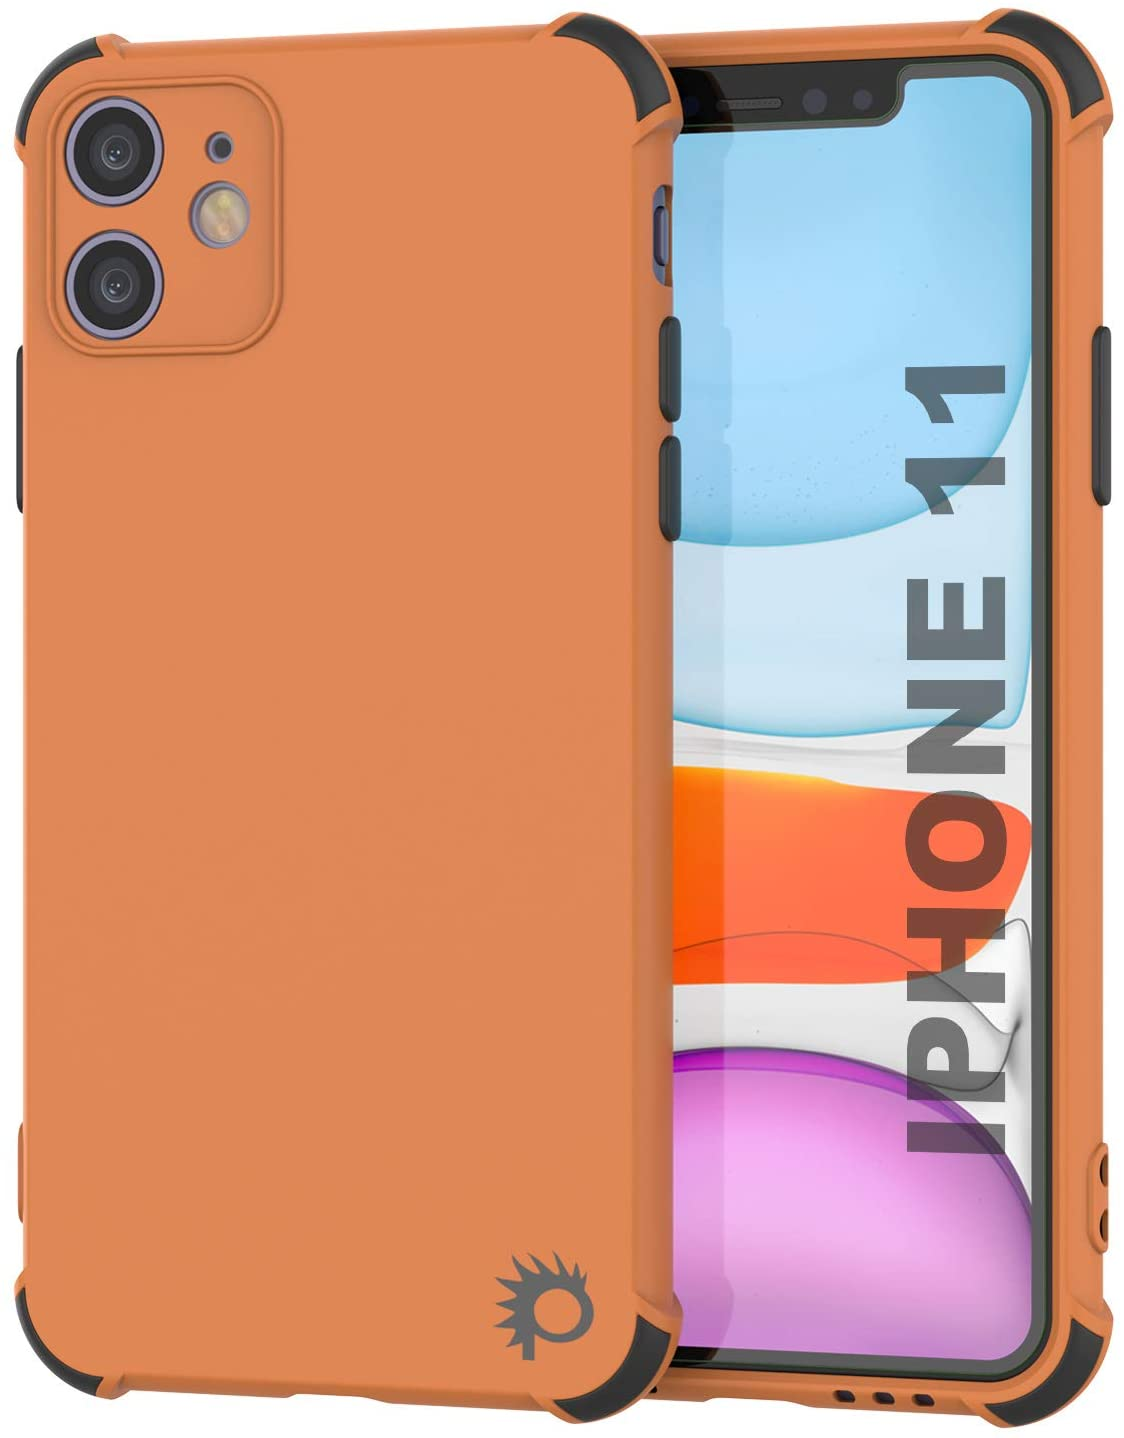 Punkcase Protective & Lightweight TPU Case [Sunshine Series] for iPhone 11 [Orange]